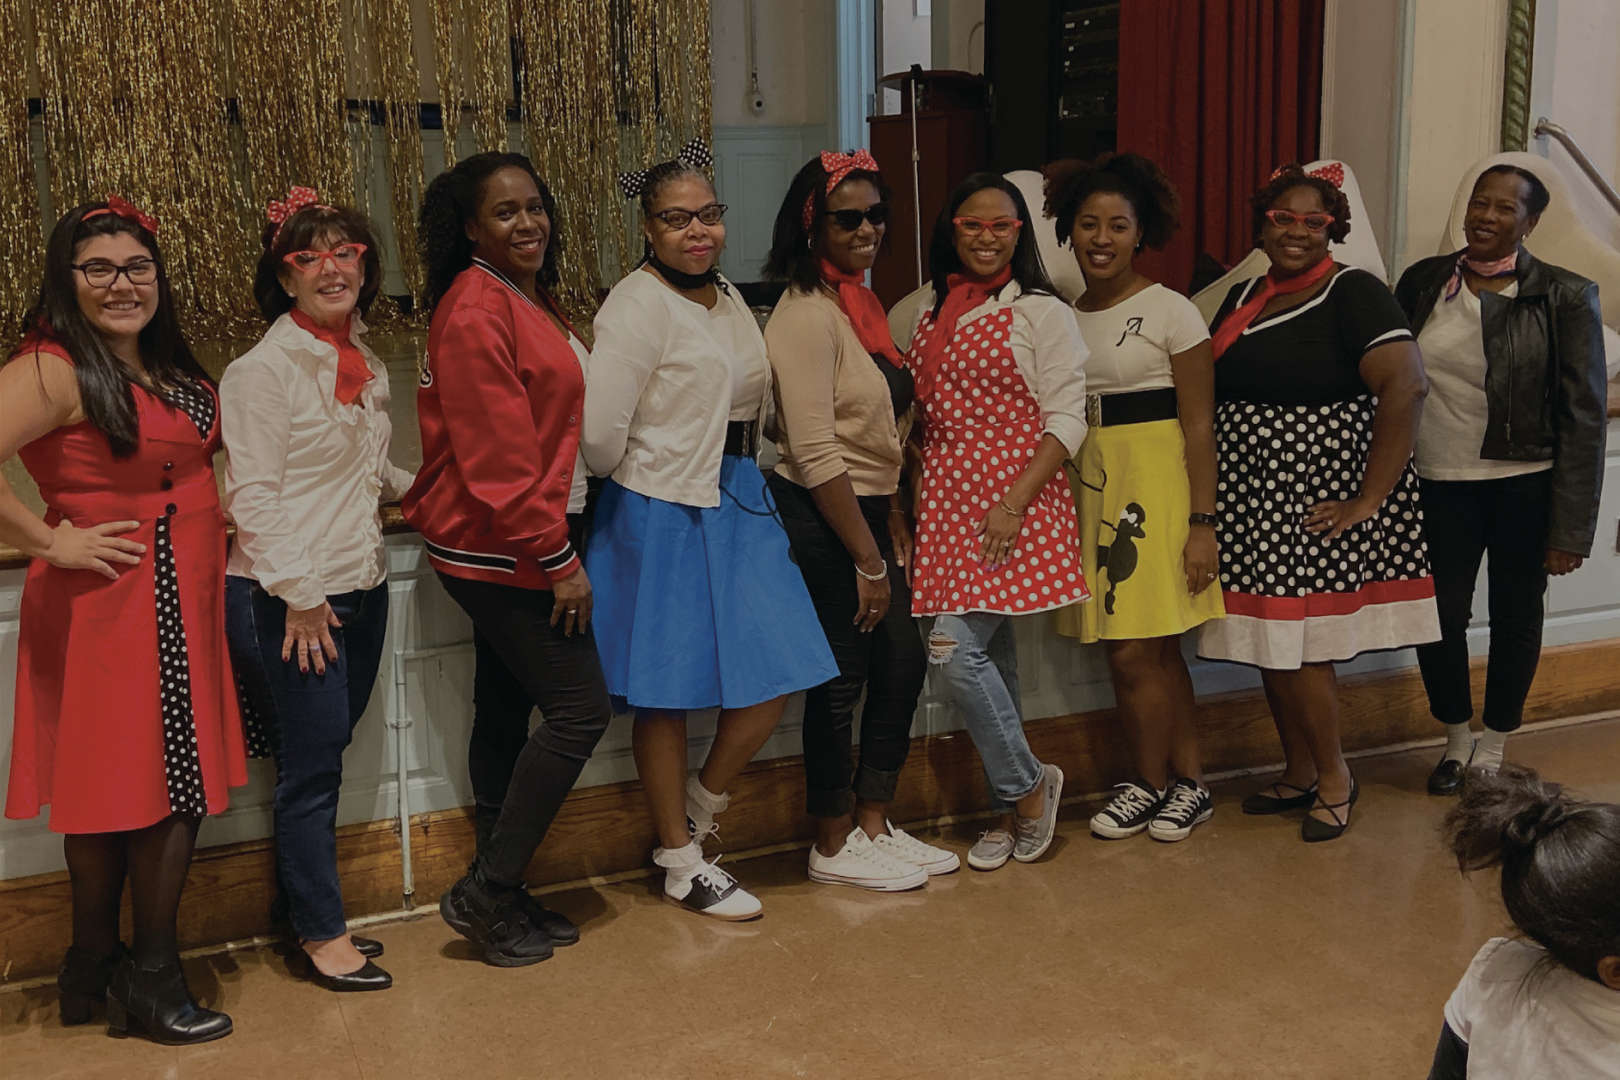 Staff dressed in 50's outfits